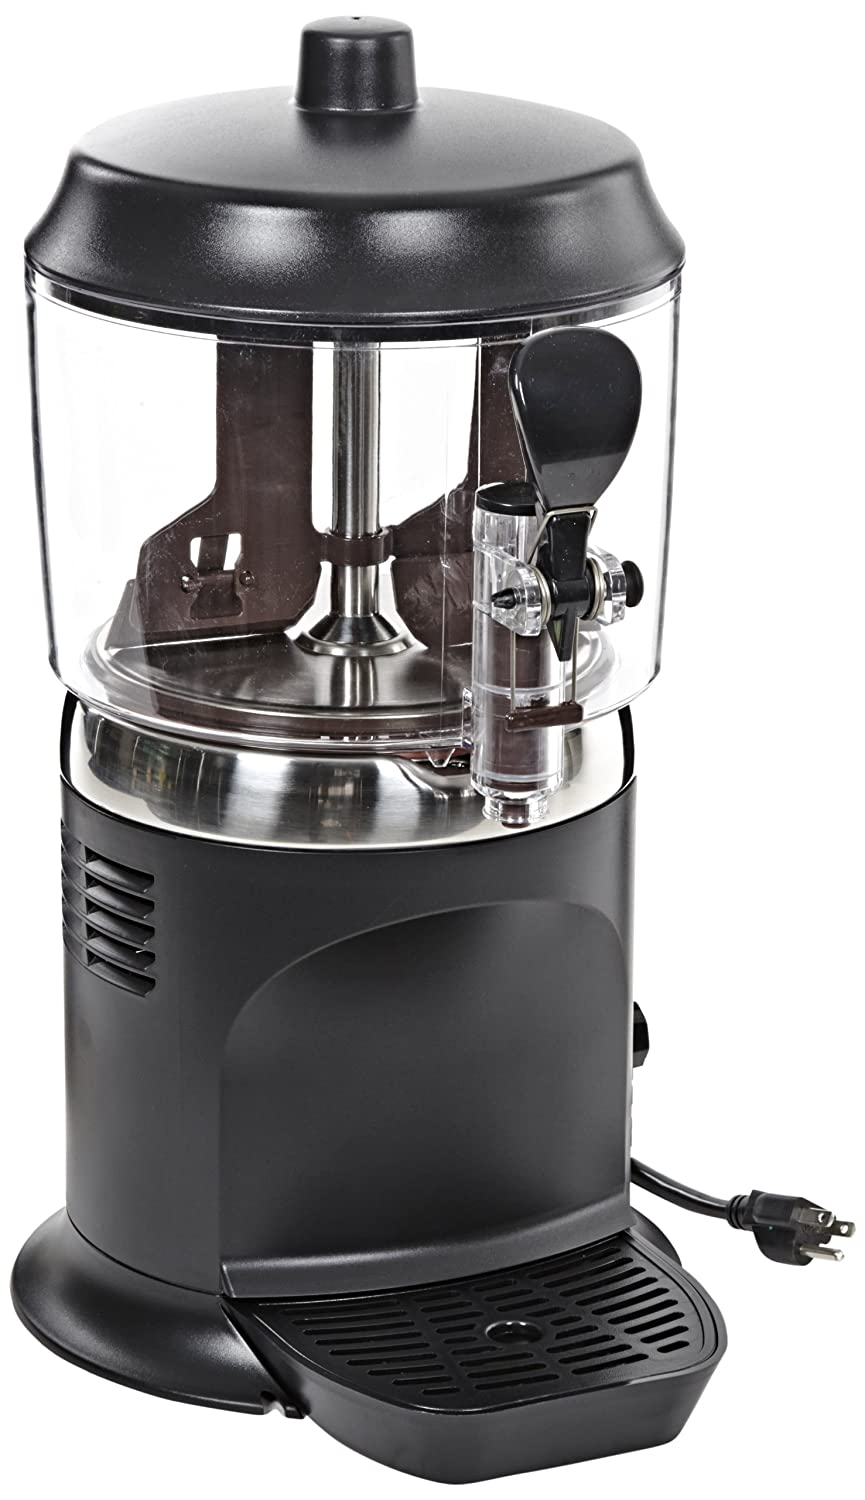 Oakland Mall Benchmark 21011 Outlet sale feature Hot Beverage Topping 120V 1100W Dispenser 9.2